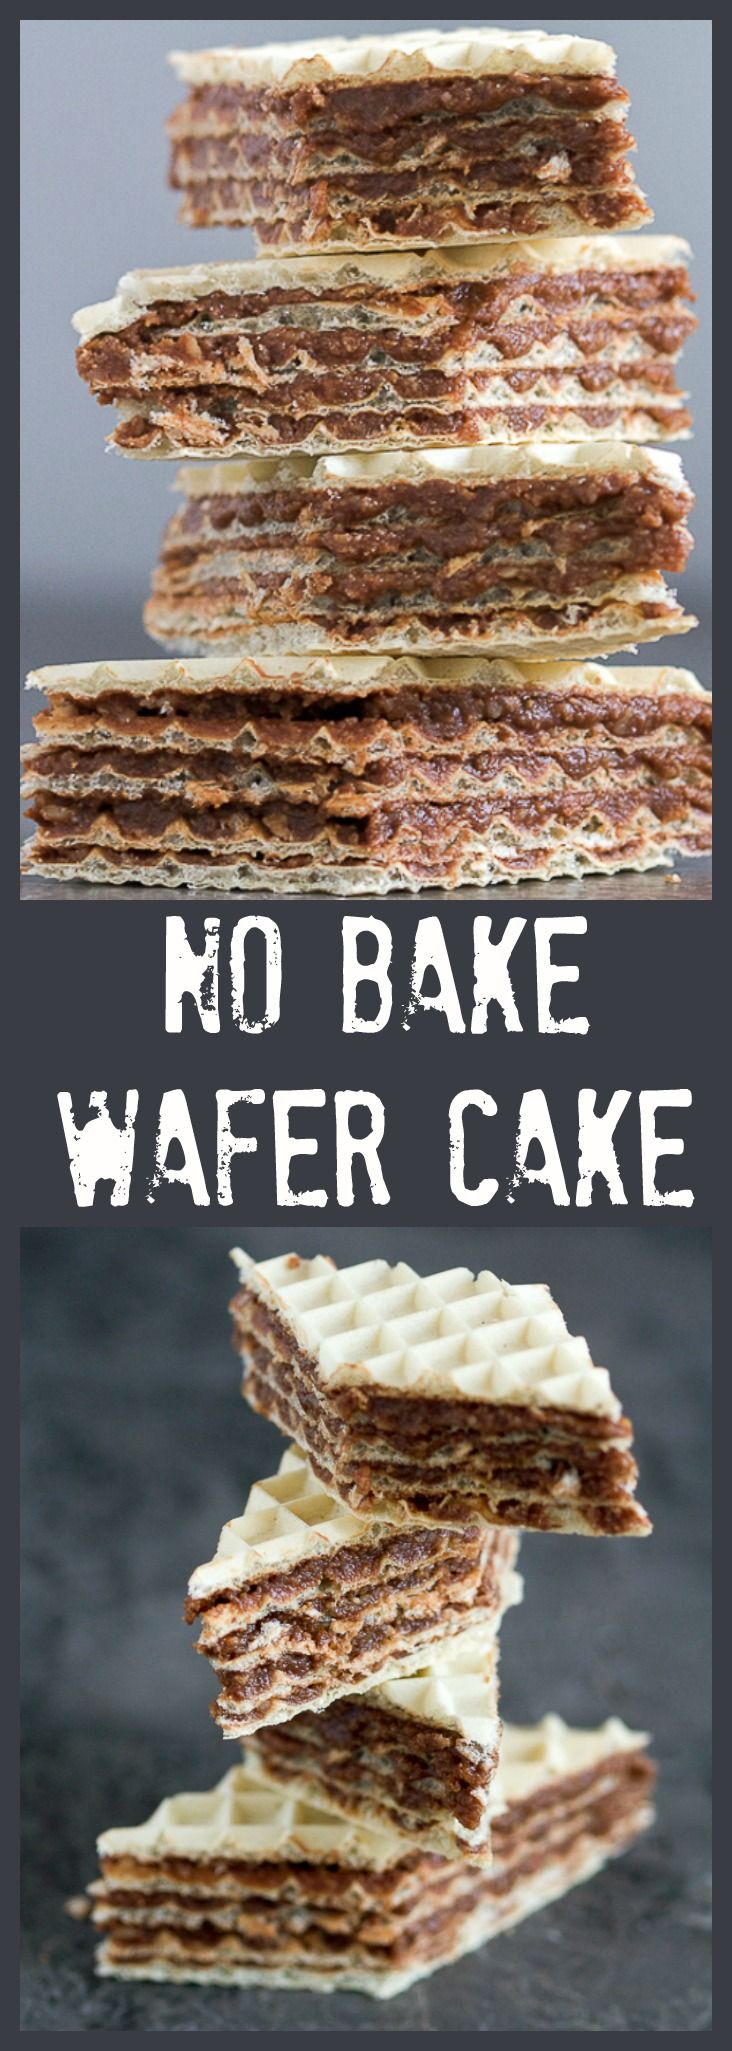 Balkan No Bake Wafer Cake: layered tort wafers connected with a smooth filling made out of chocolate, butter and walnut melted in hot milk.